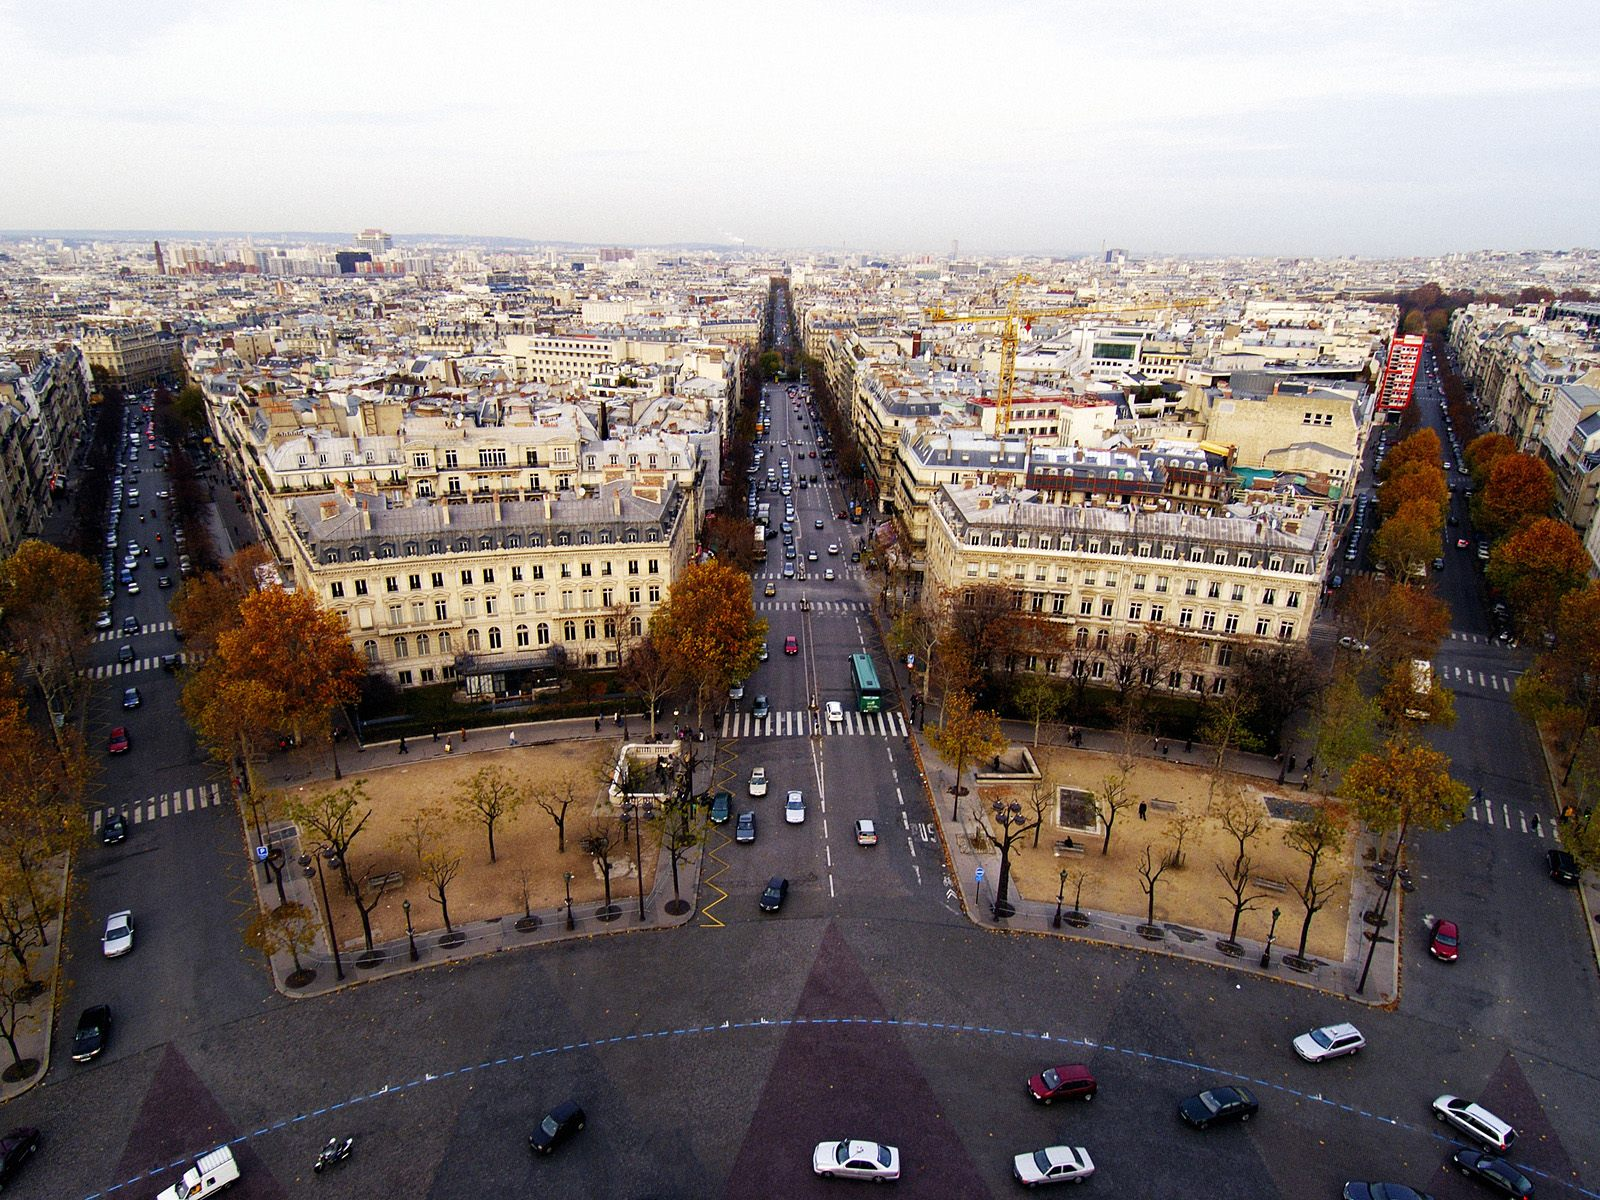 Aerial+View+of+Place+de+l_Etoile,+Paris,+France.jpg (1600×1200)